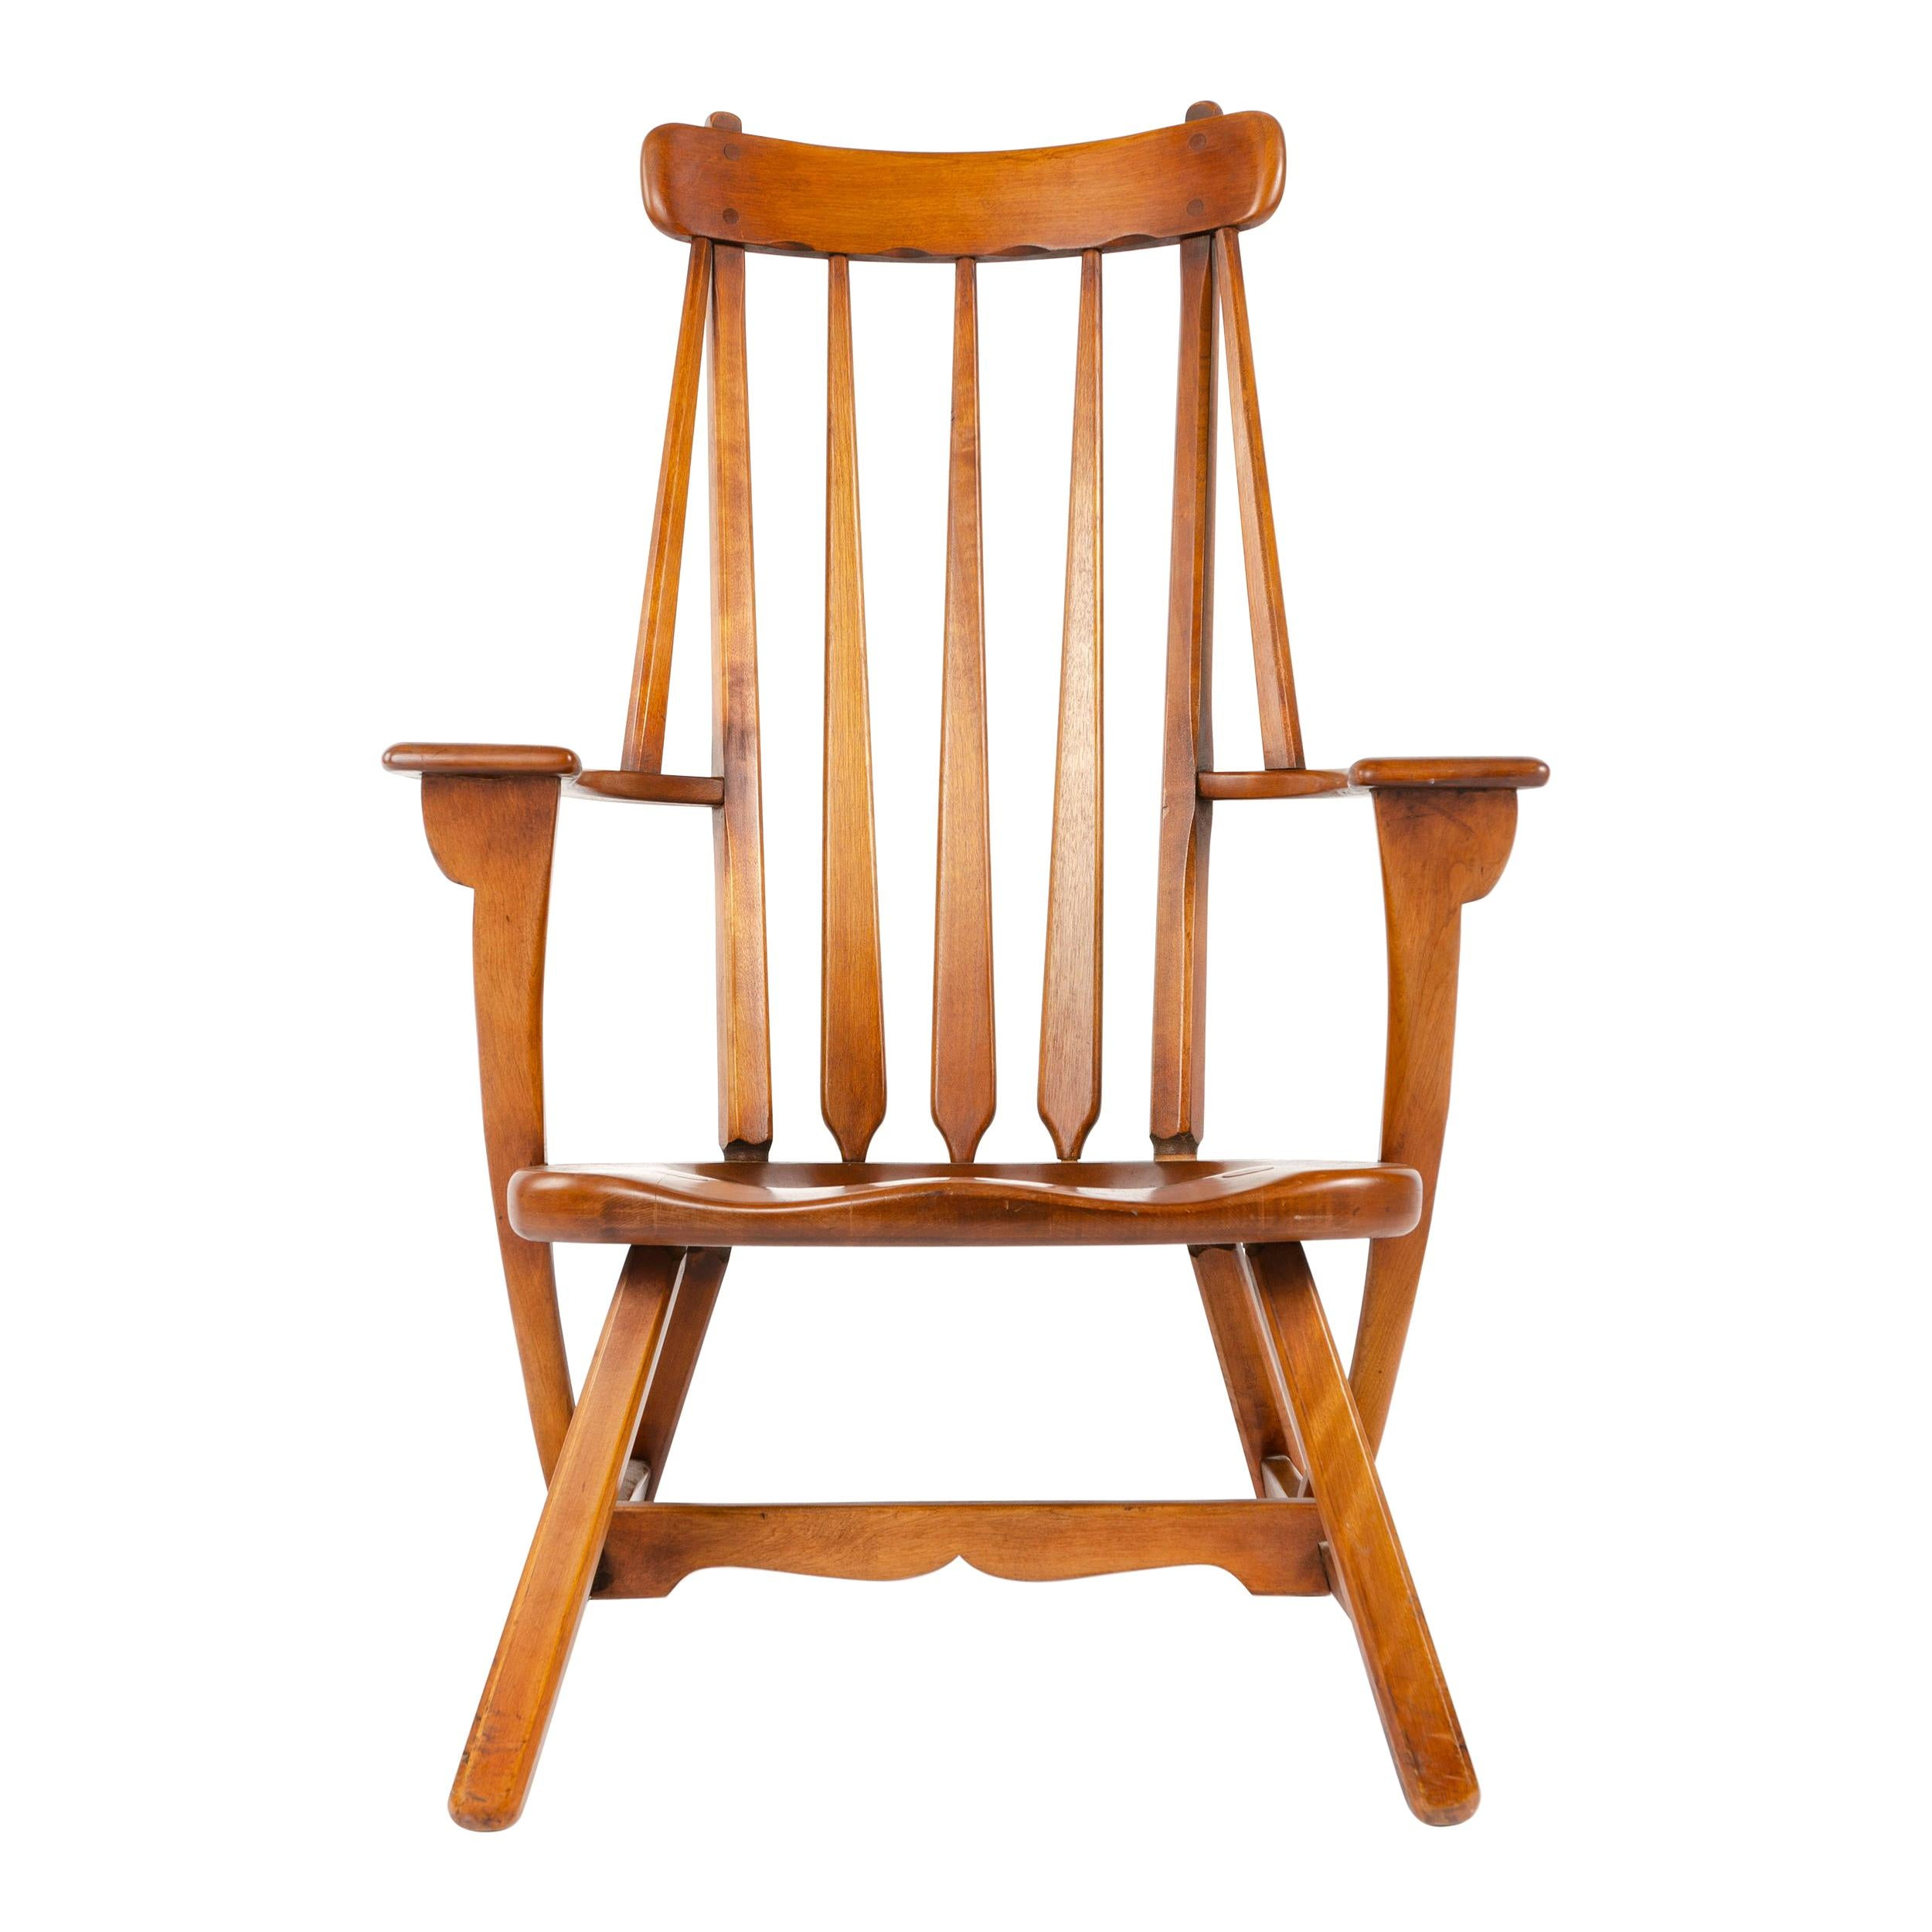 Enjoyable Maple Rocking Chair By Sikes For Sale At 1Stdibs Pabps2019 Chair Design Images Pabps2019Com